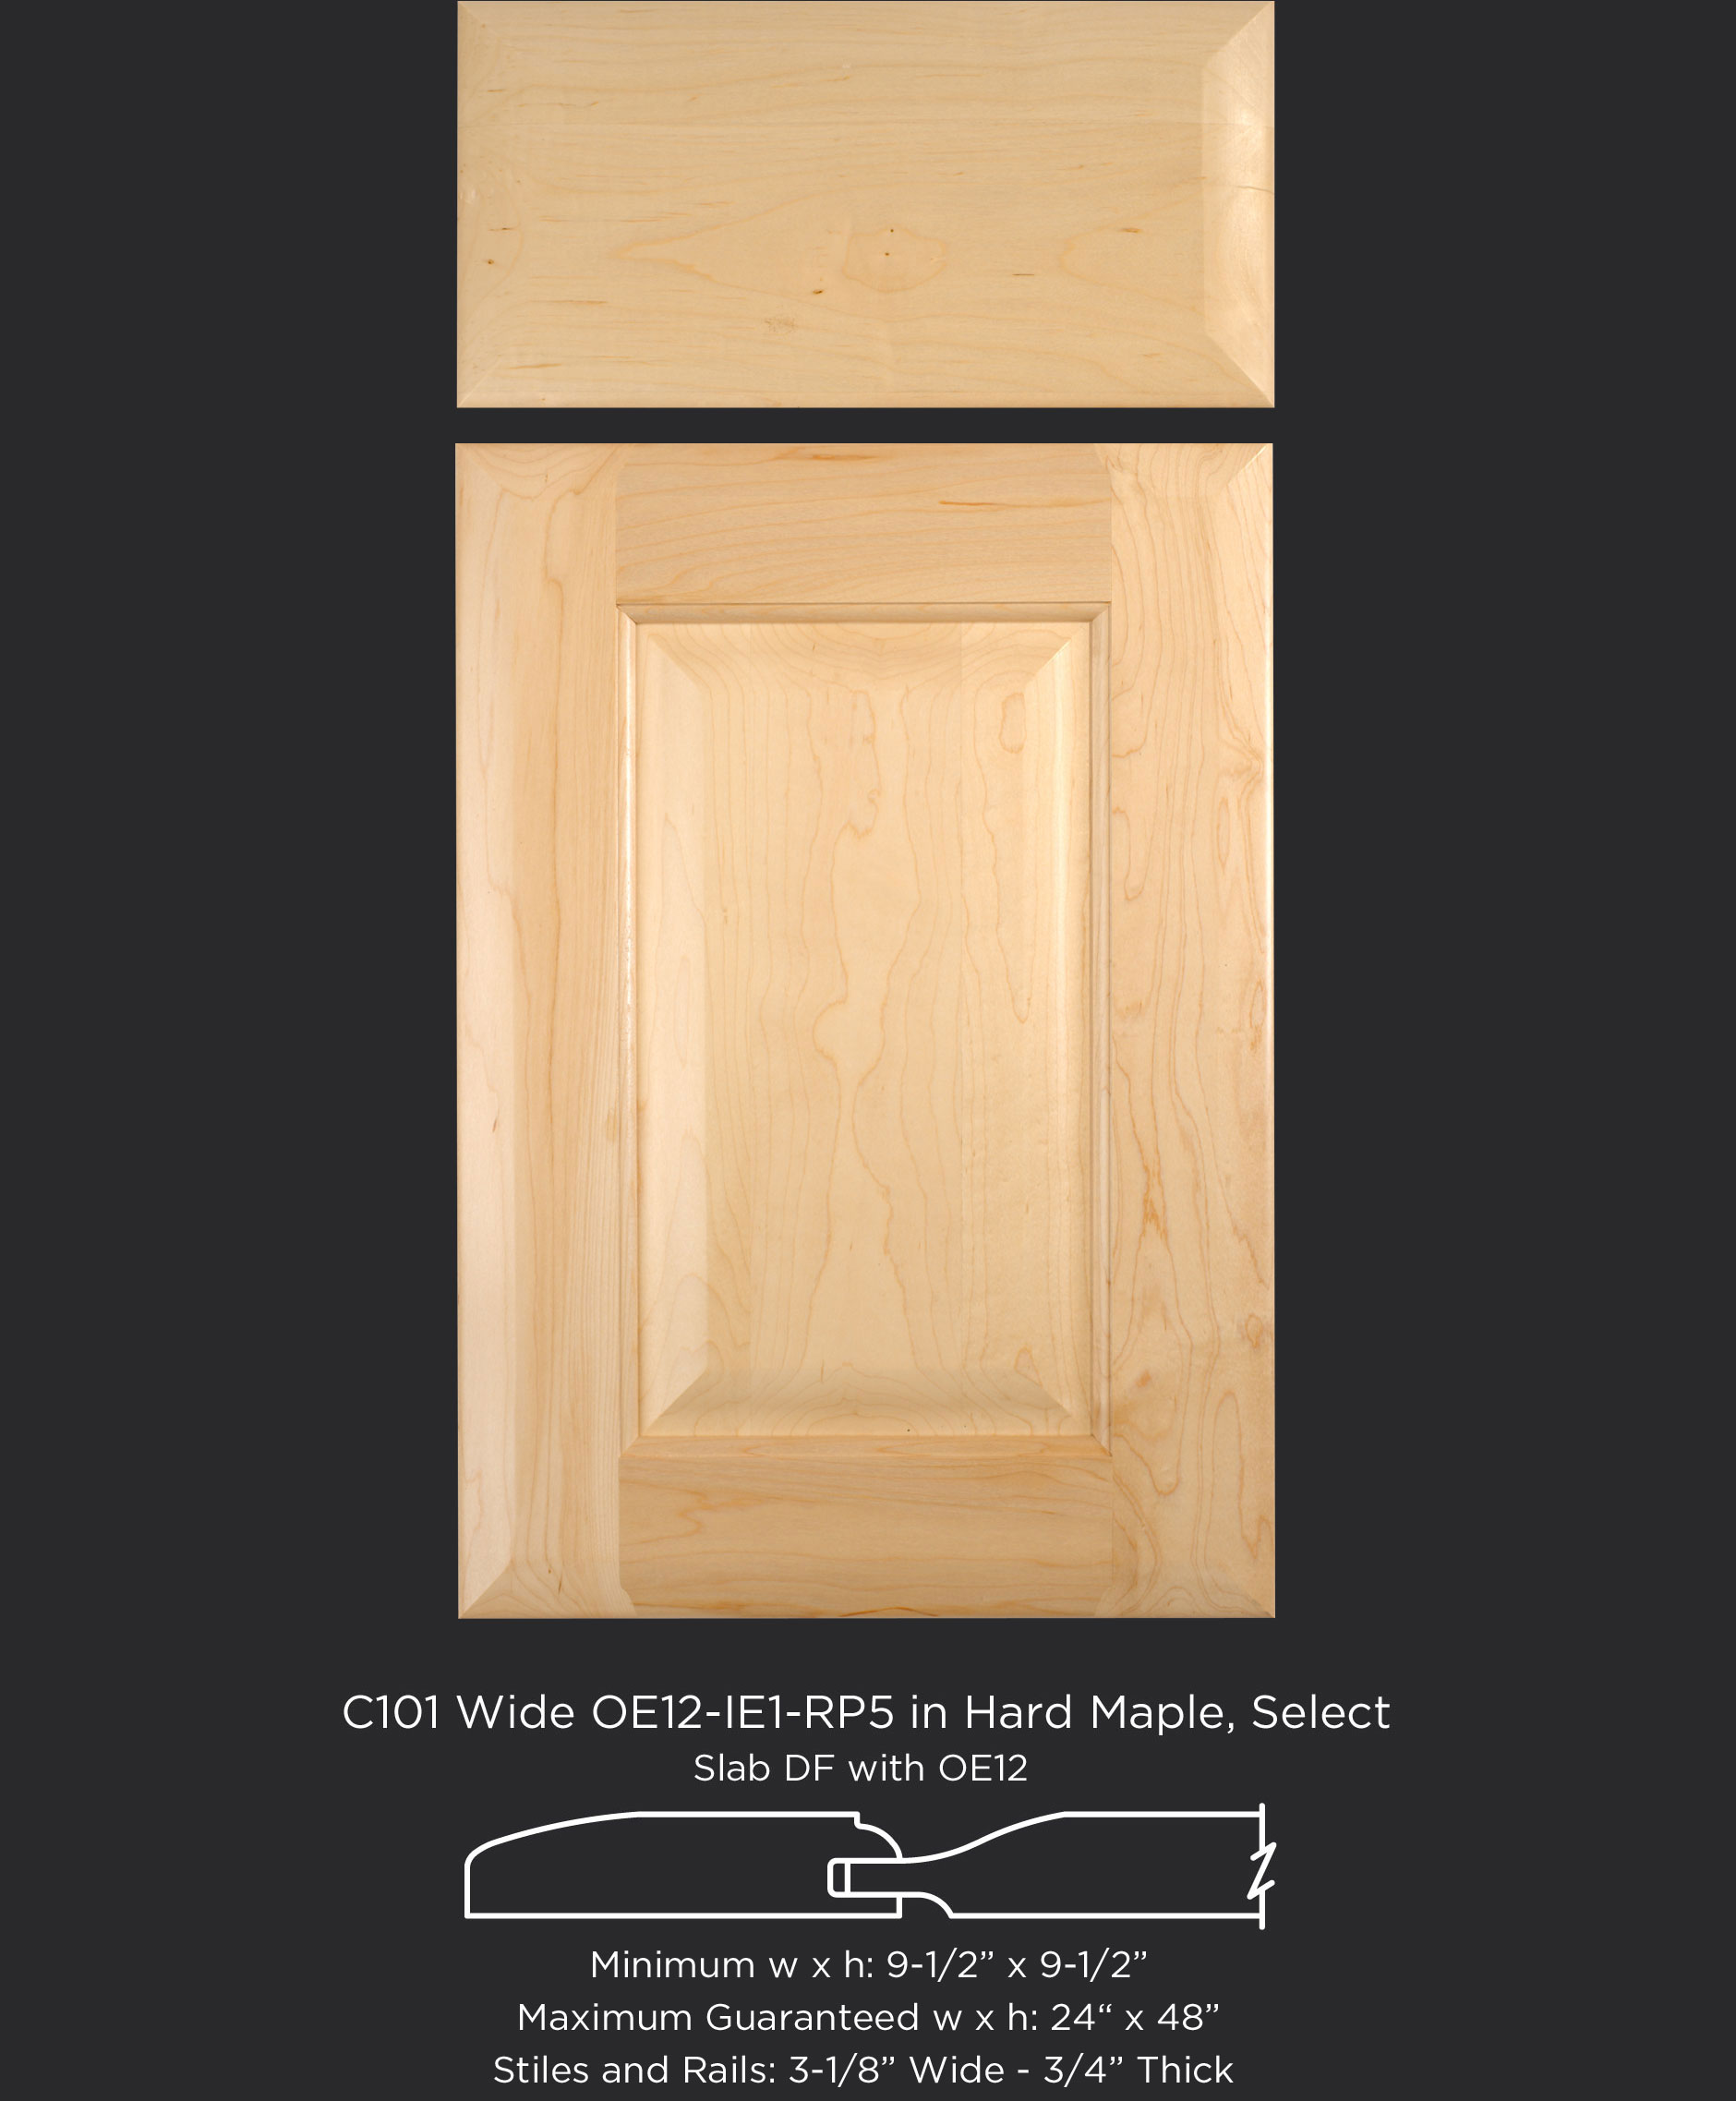 Cope and Stick Cabinet Door C101 Wide OE12-IE1-RP5 in Hard Maple, Select - Slab drawer front with OE12